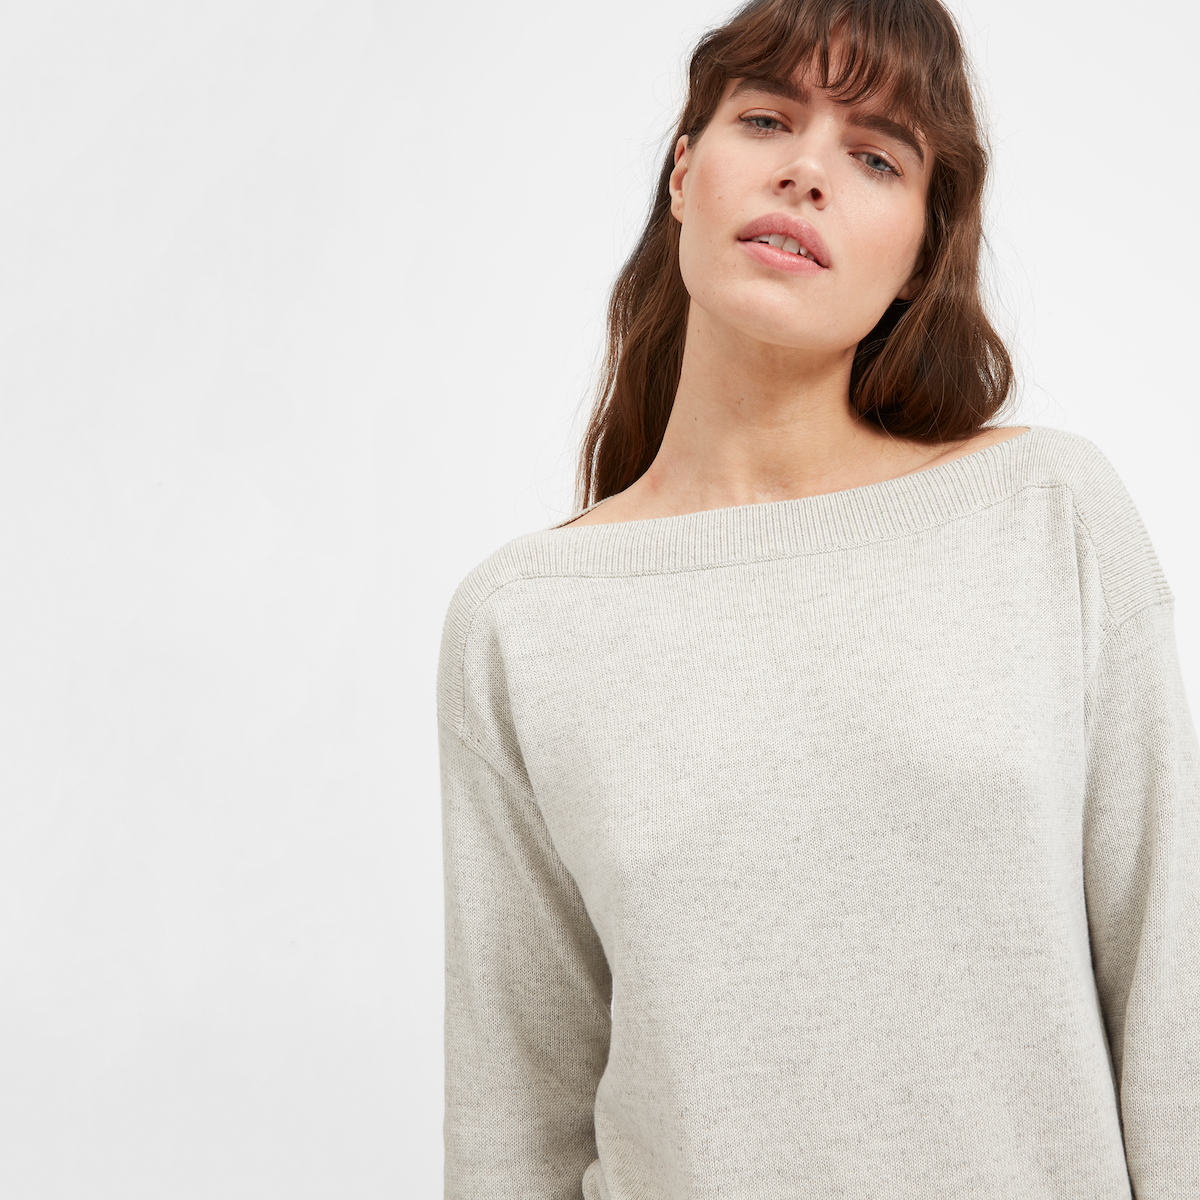 The Soft Cotton Boatneck by Everlane